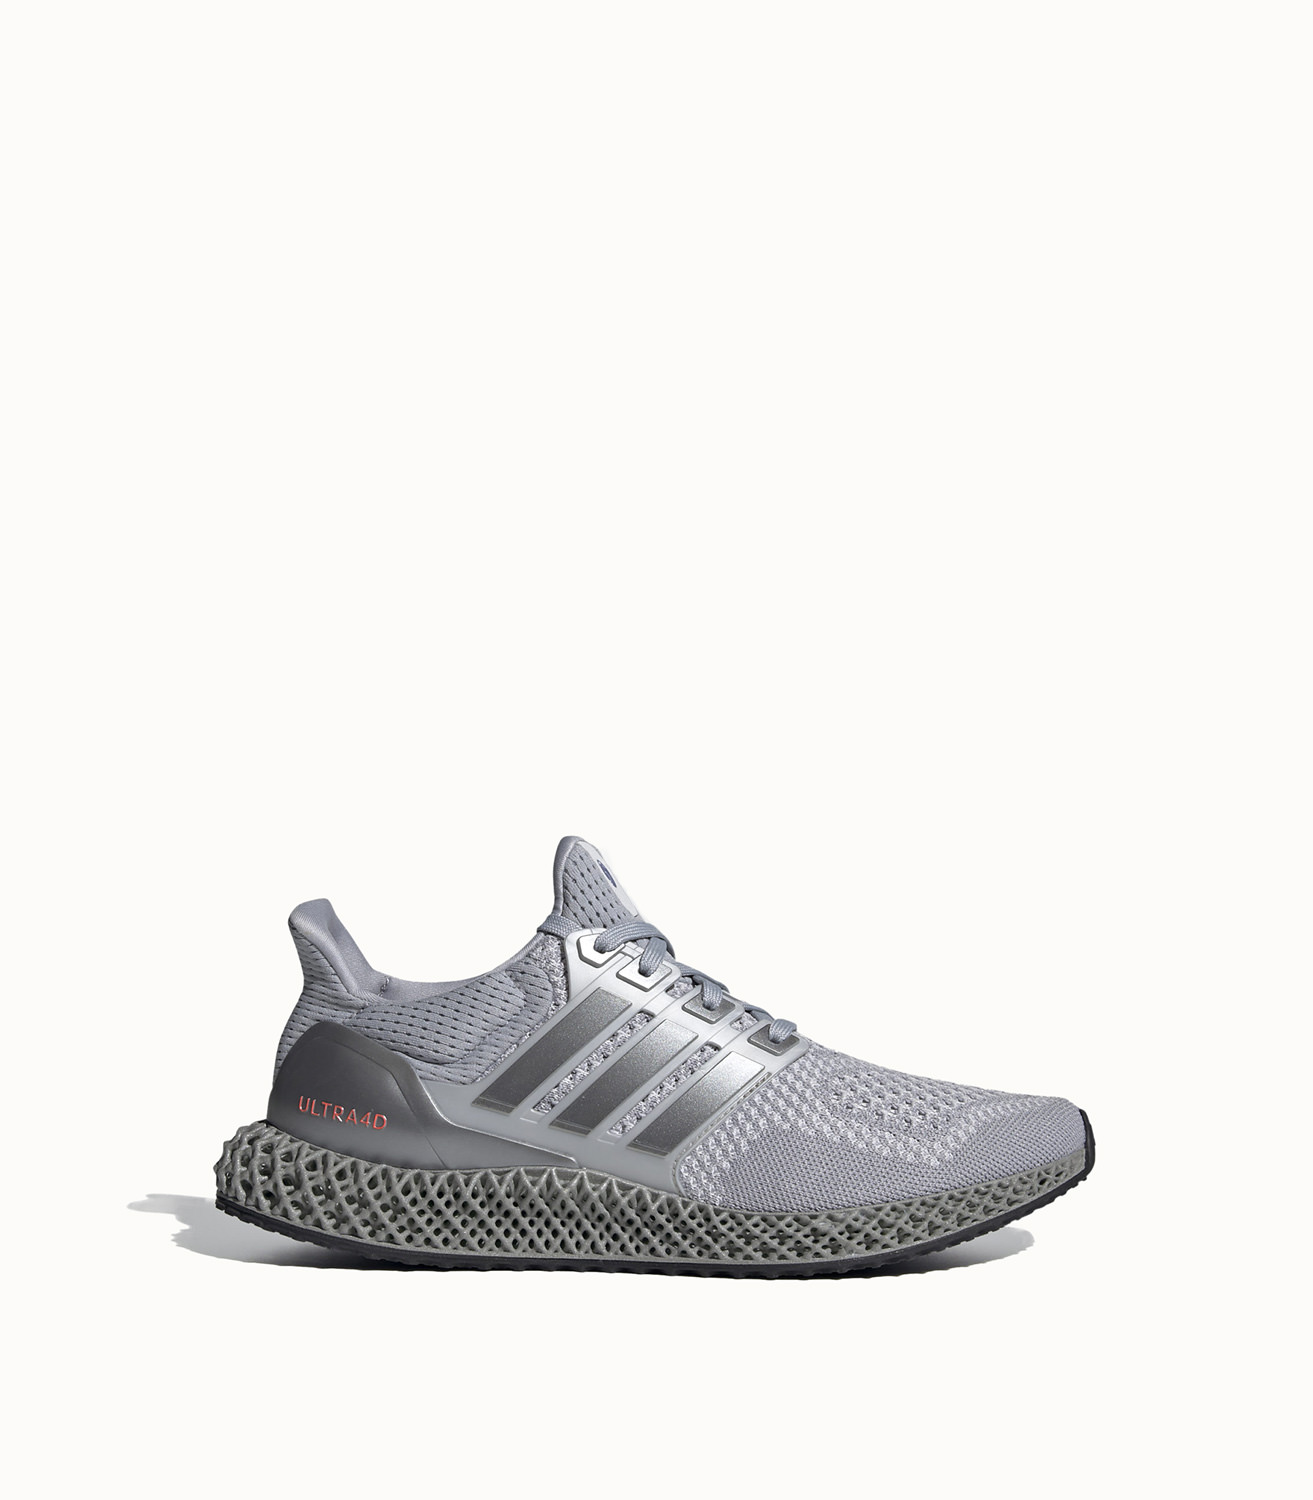 ULTRA 4D SNEAKERS COLOR GRAY